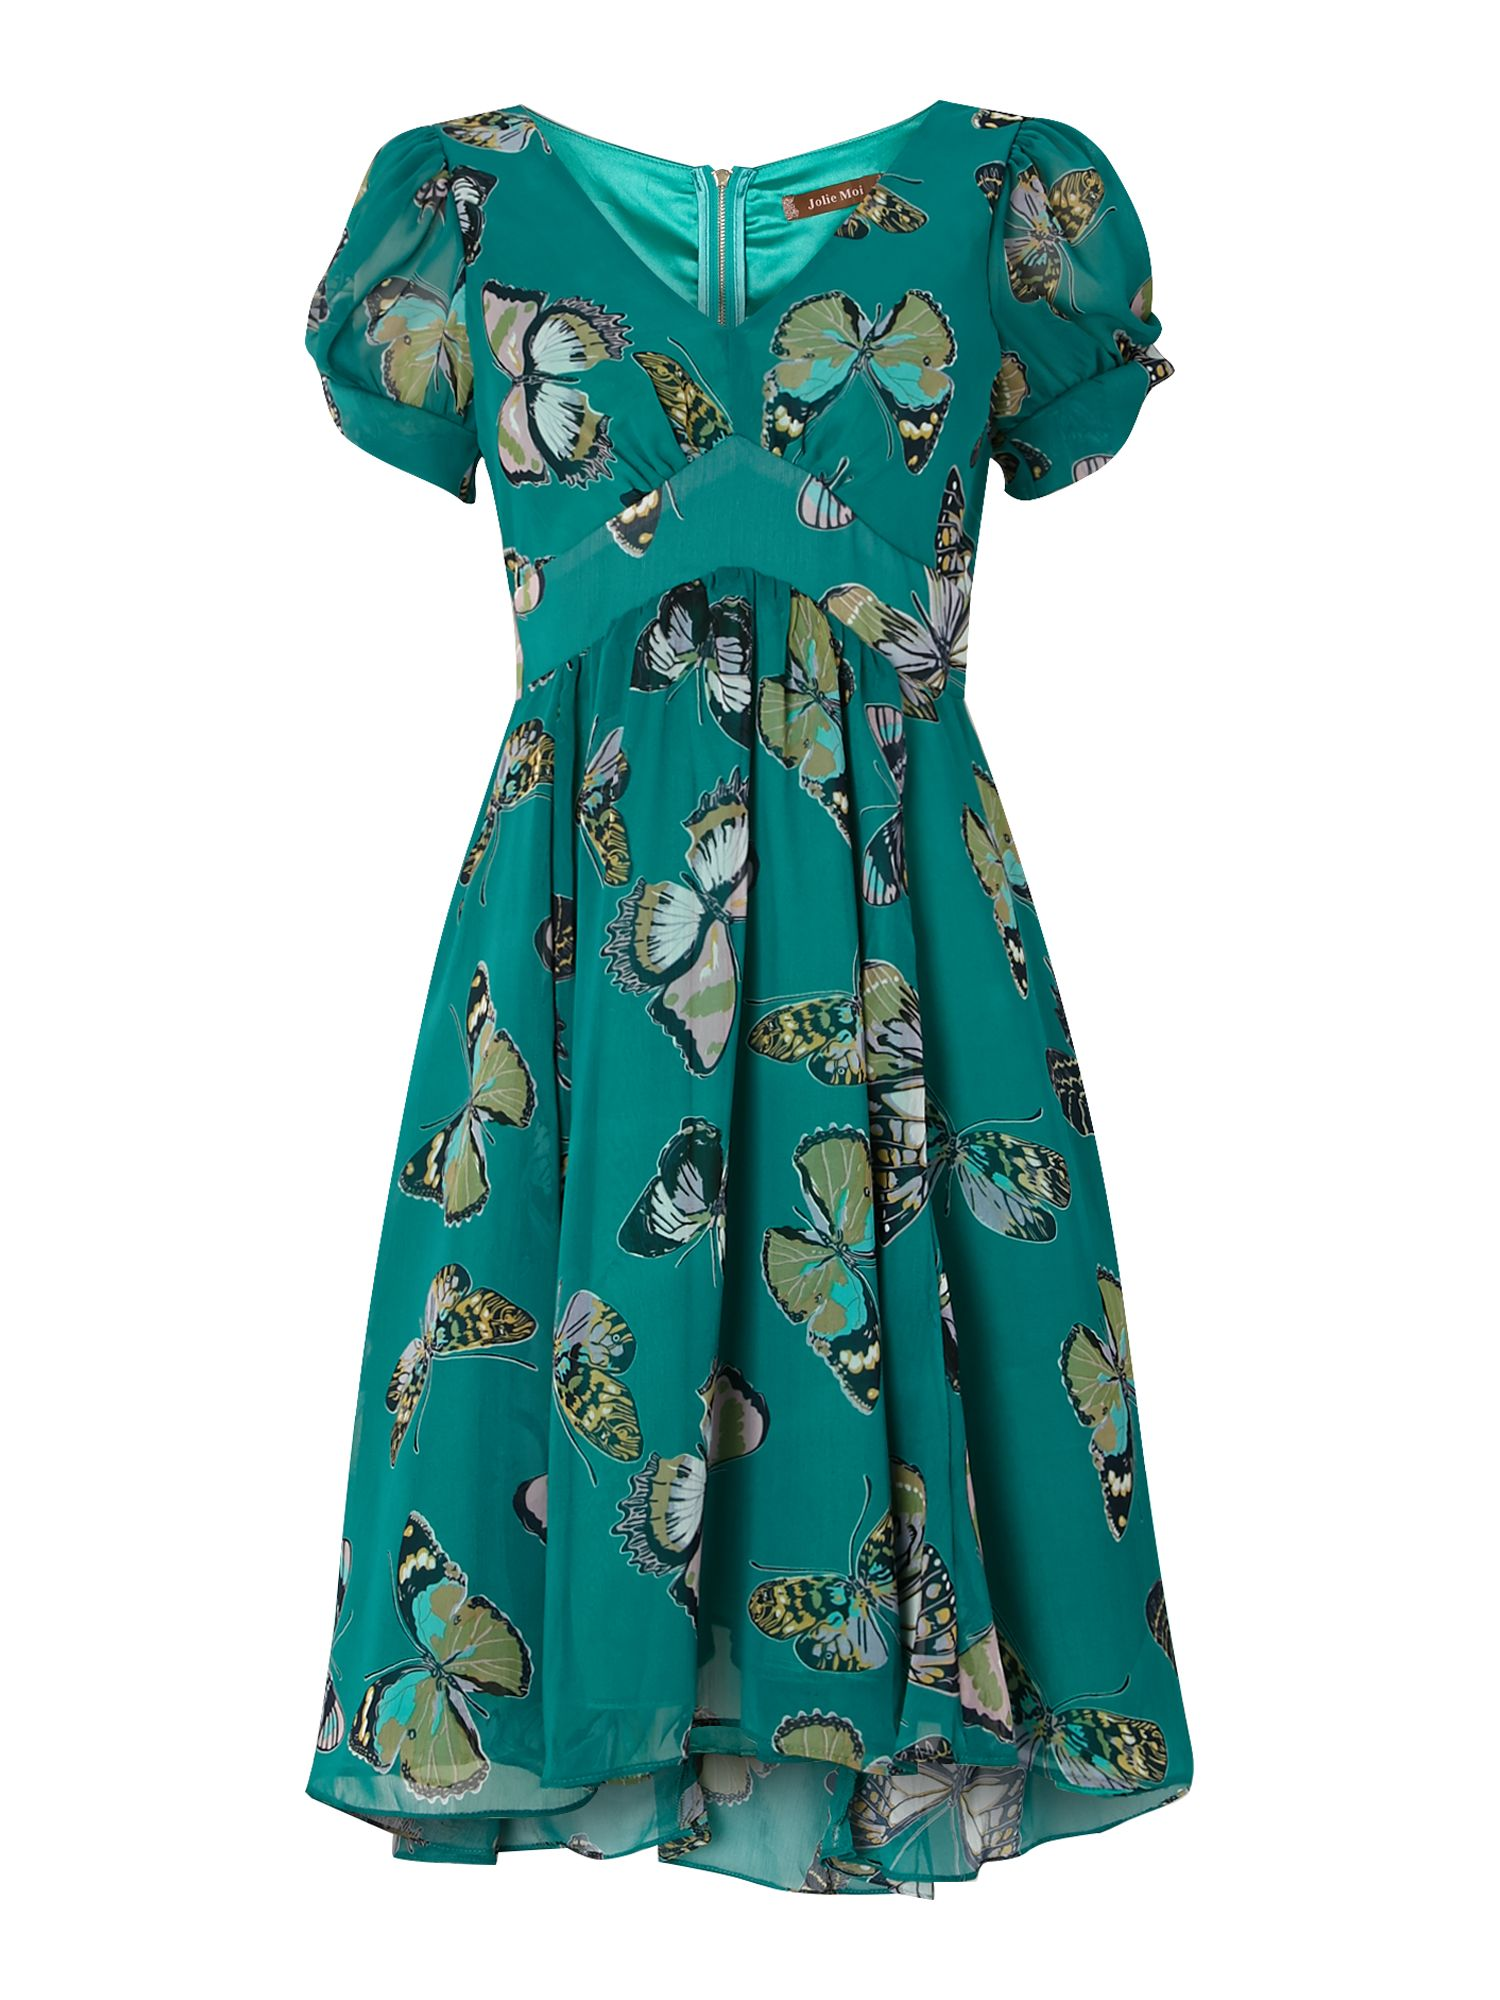 10 Websites with 1940s Dresses for Sale